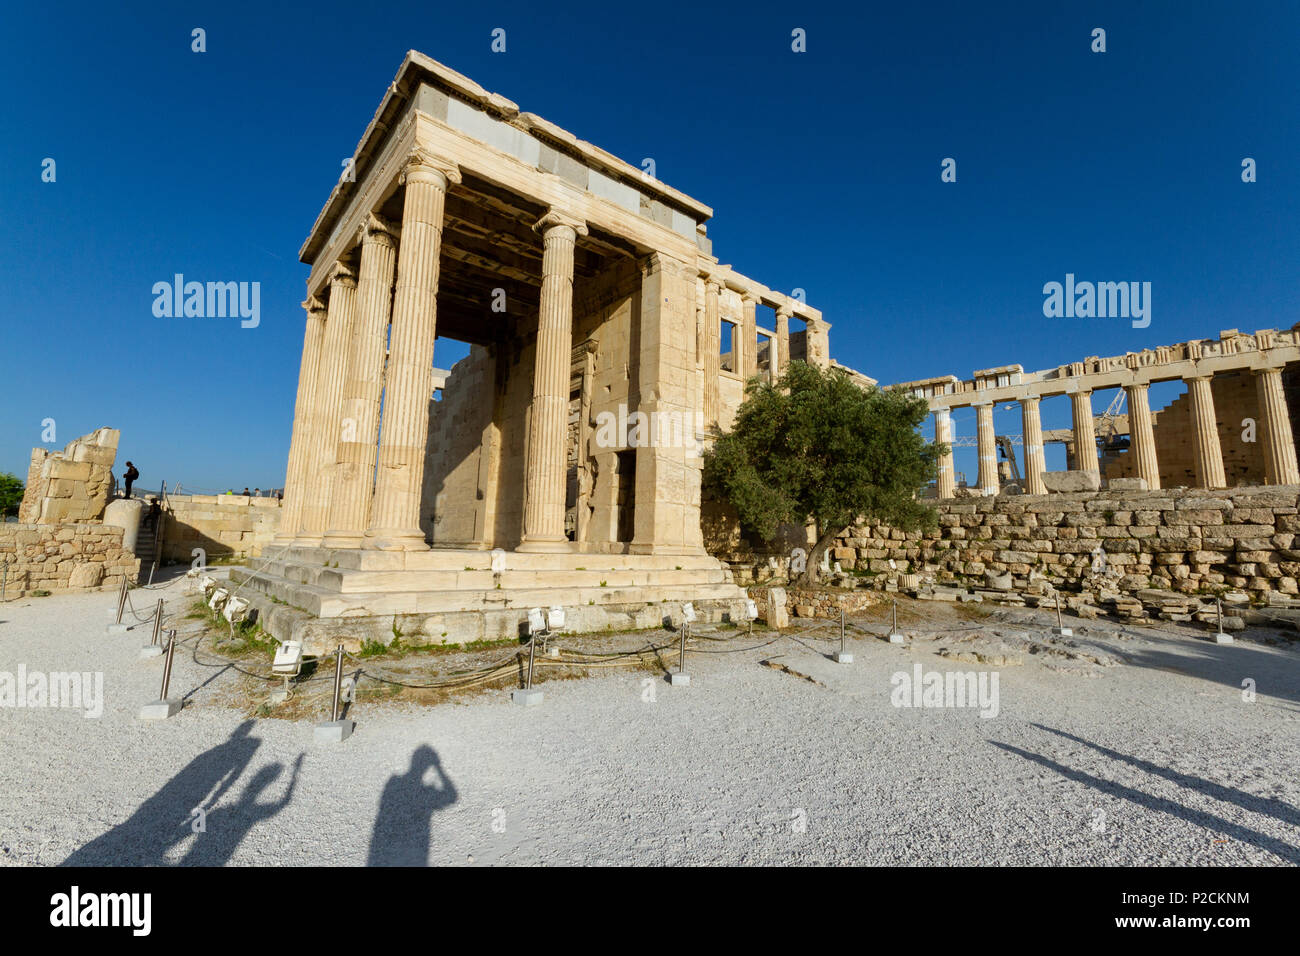 Temple ruins on the Acropolis in Athens in Greece and shadows of tourists taking photos - Stock Image